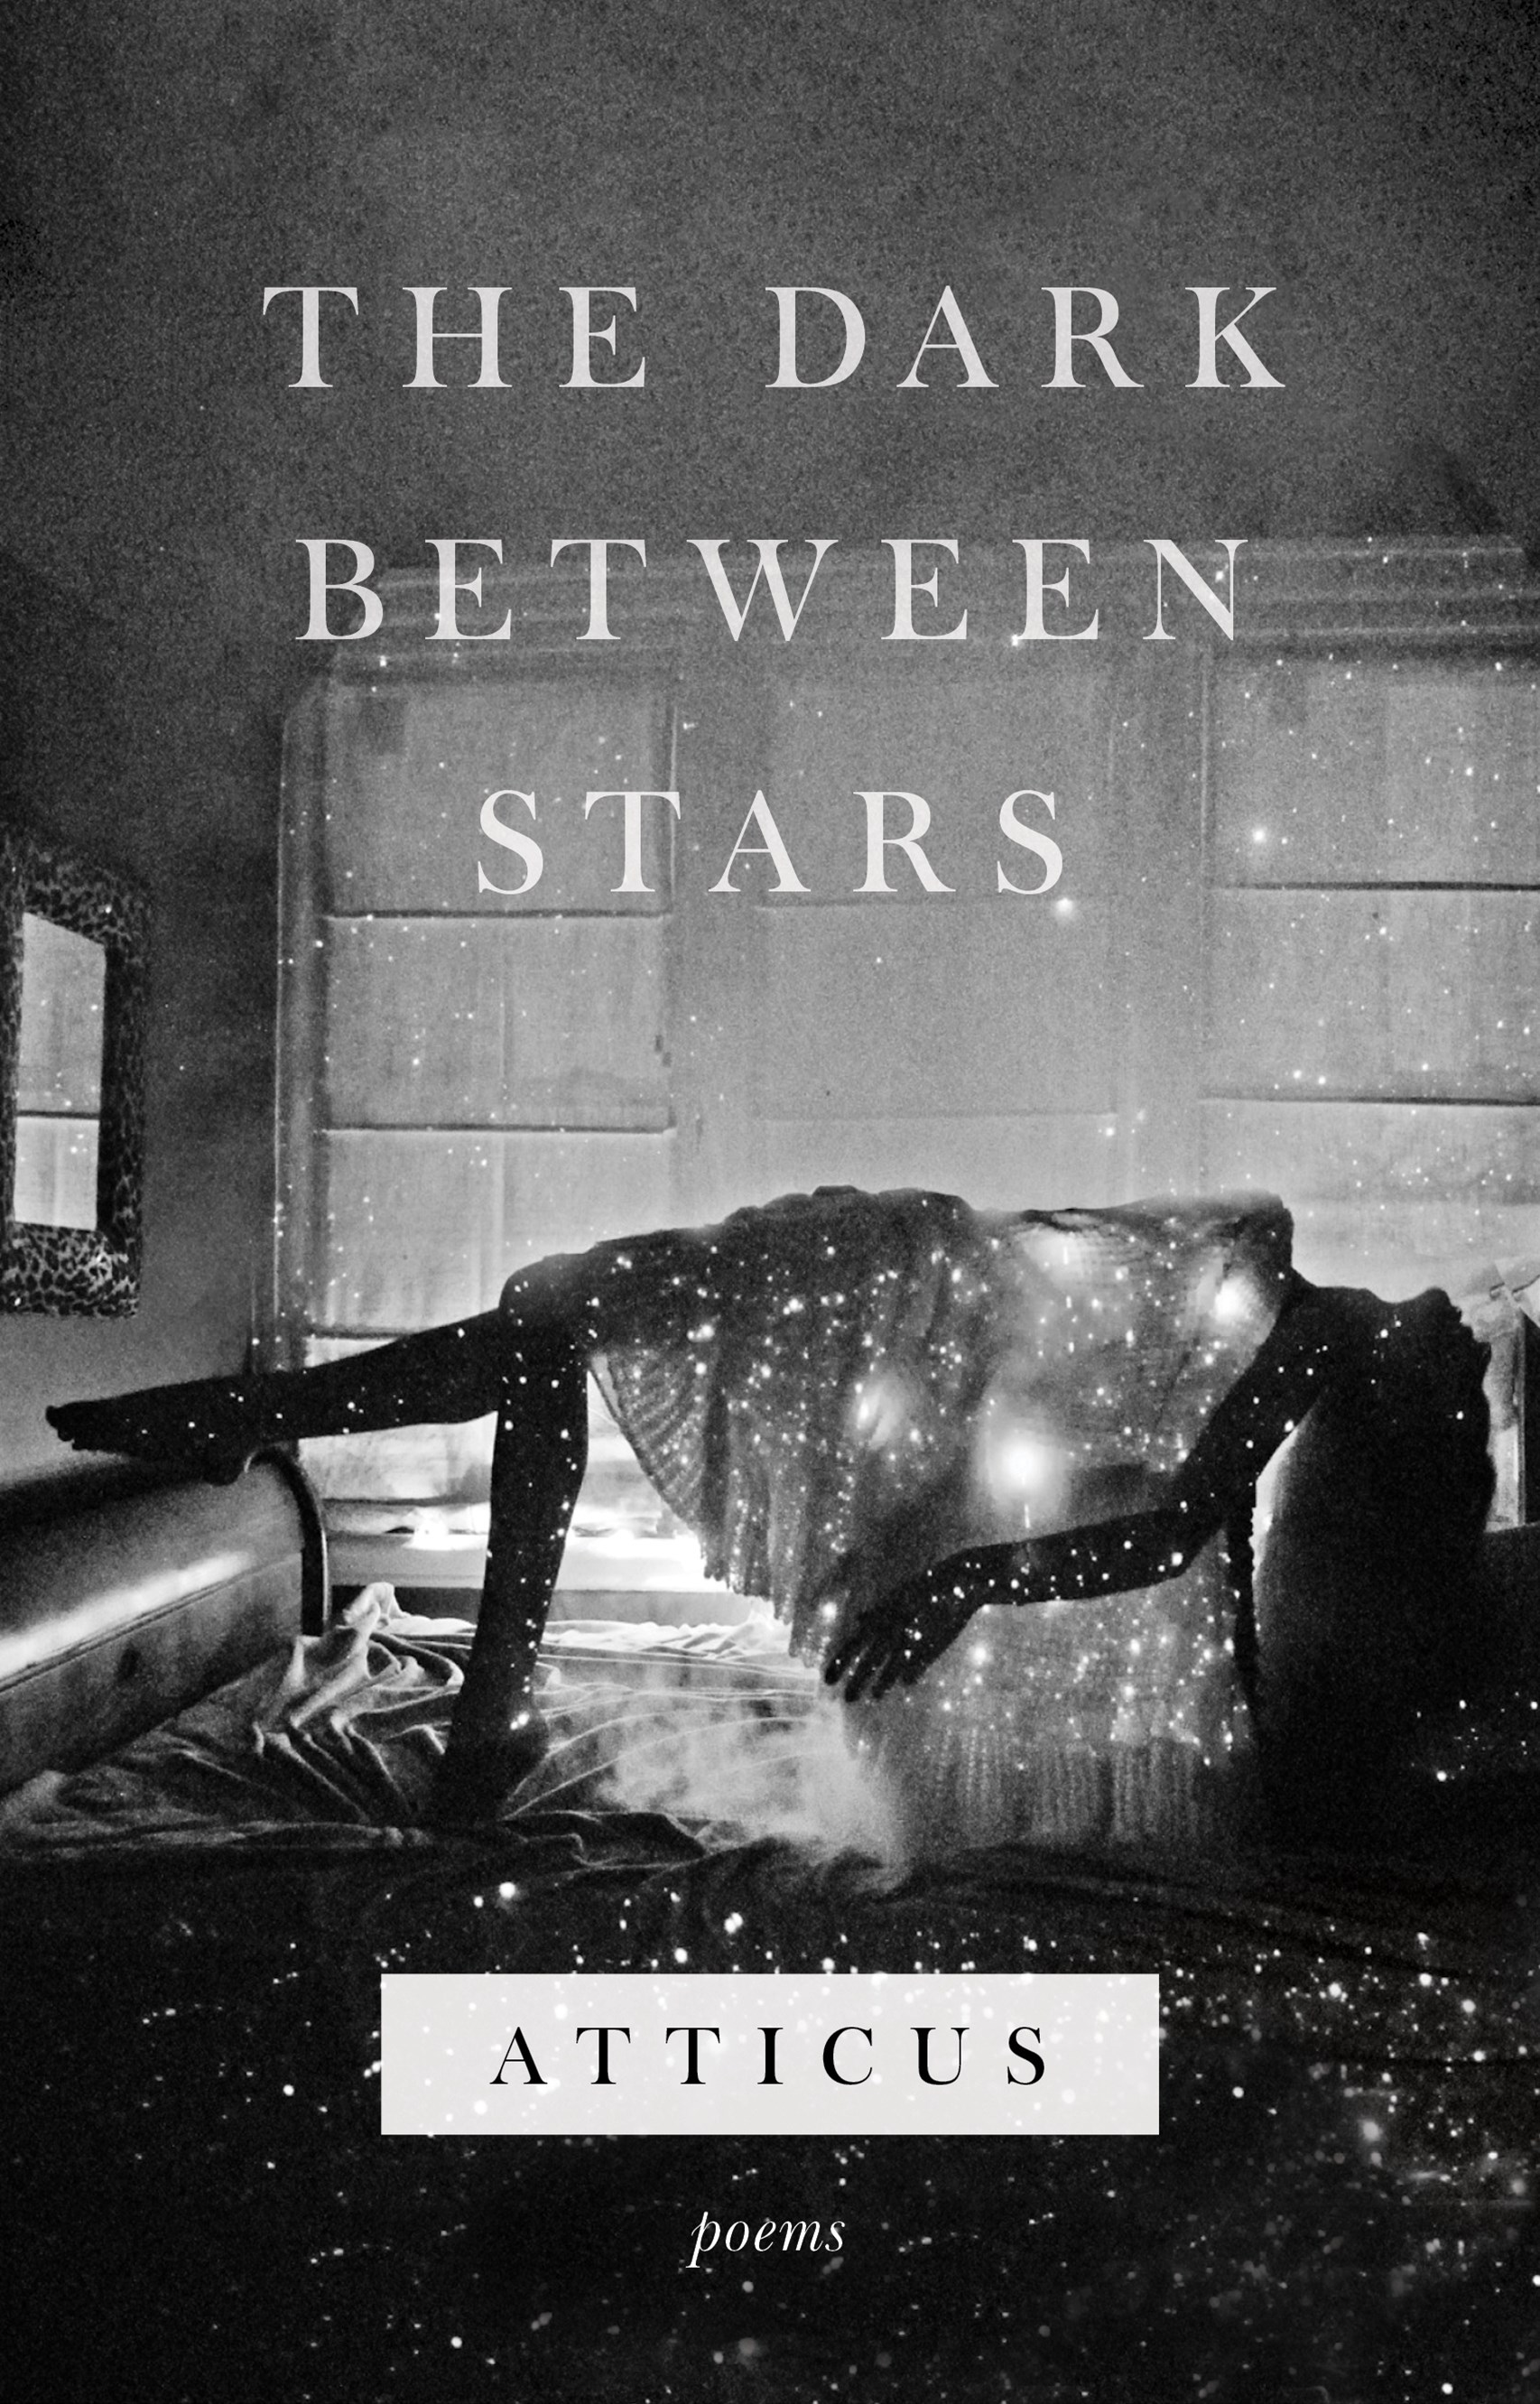 The Dark Between Stars